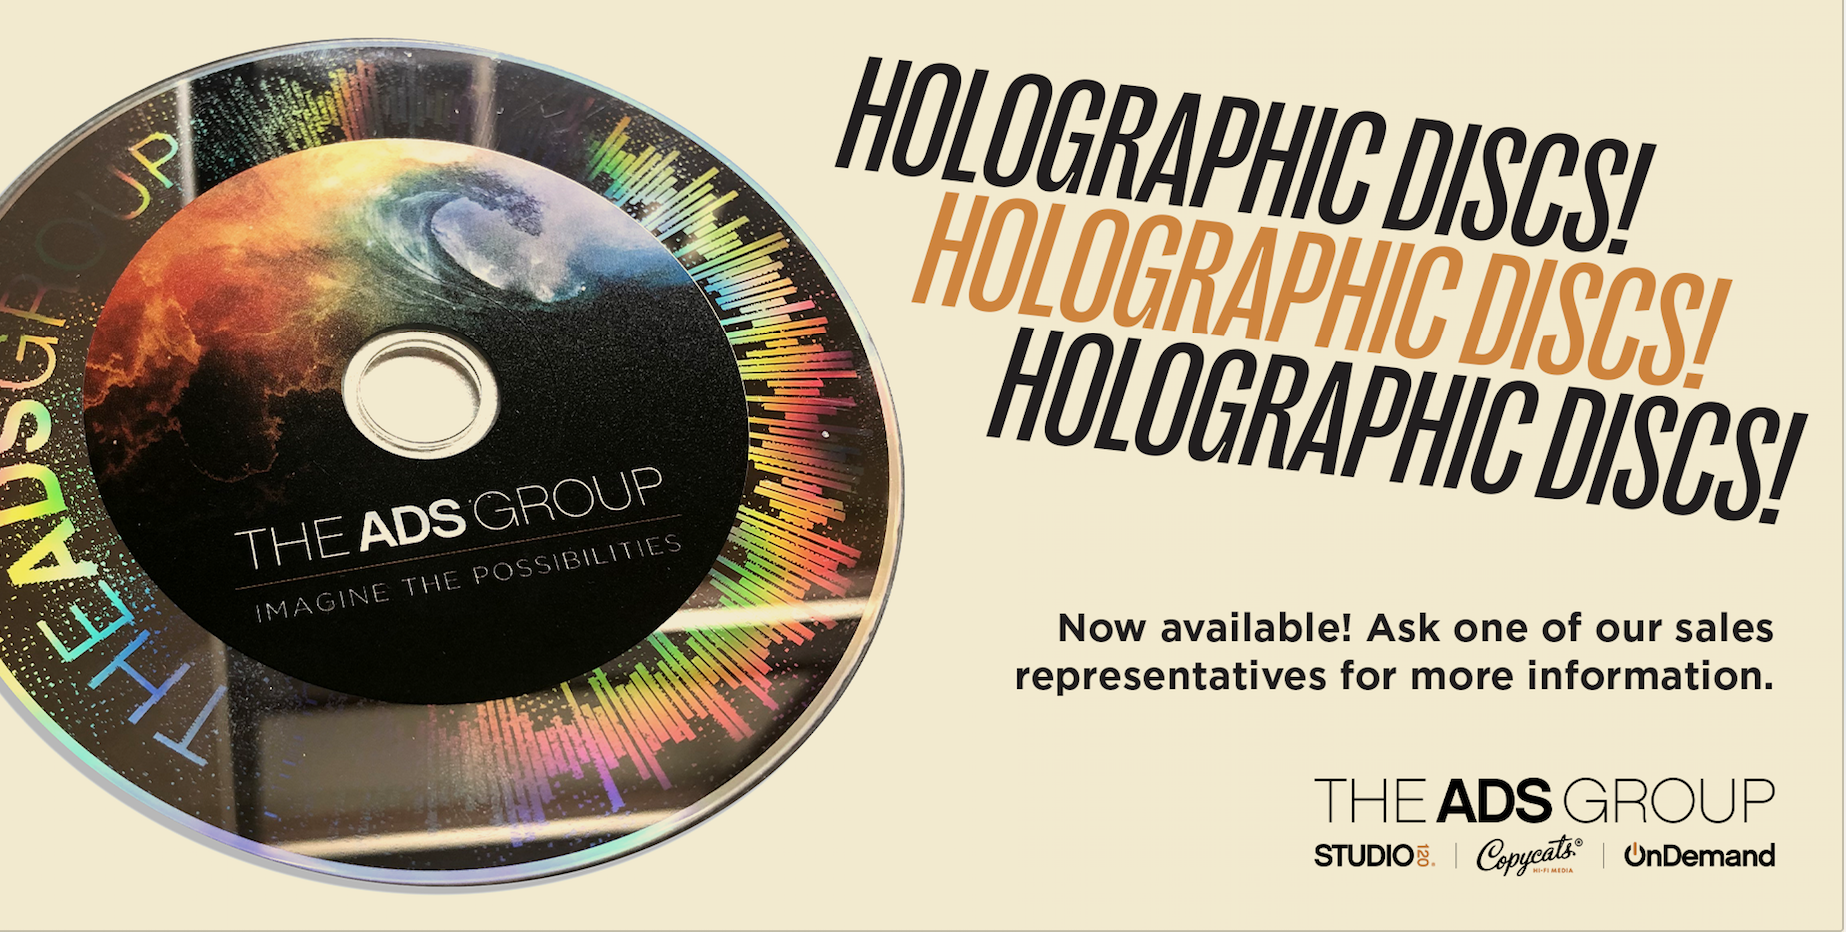 Holograhic CD from The ADS Group